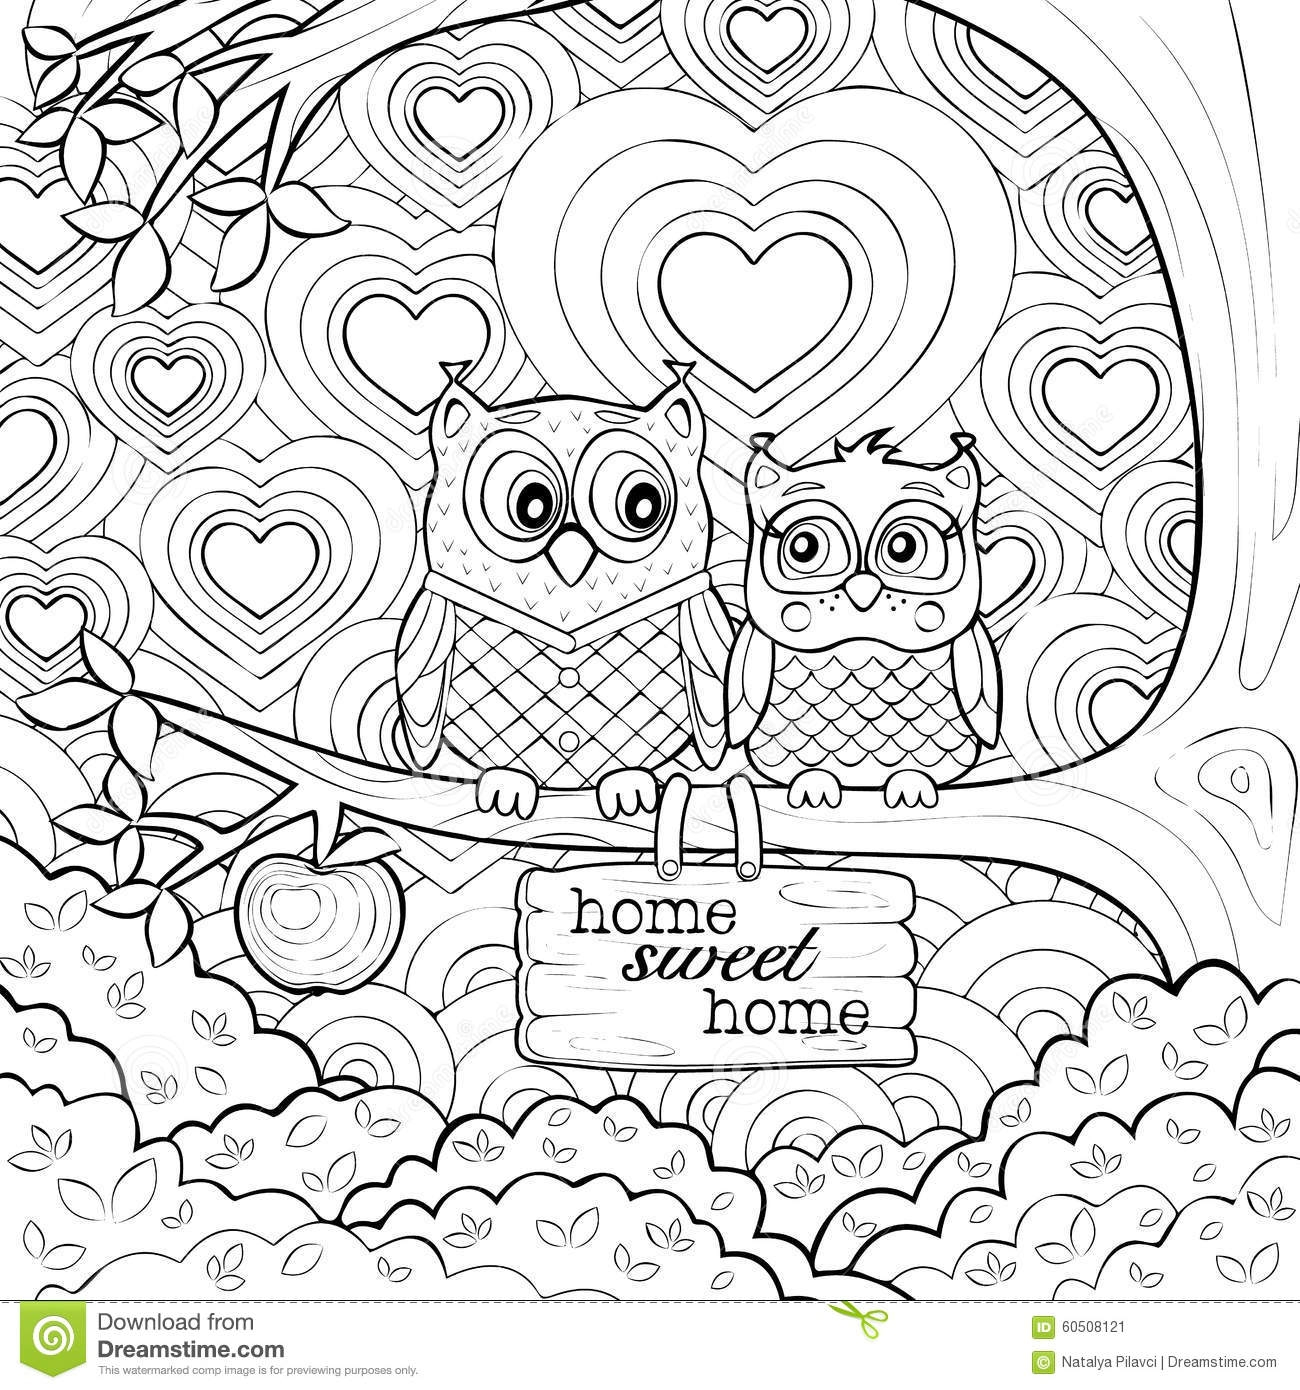 swear word coloring pages - stock illustration cute owls art therapy coloring page very picture two little looking each other pure love image